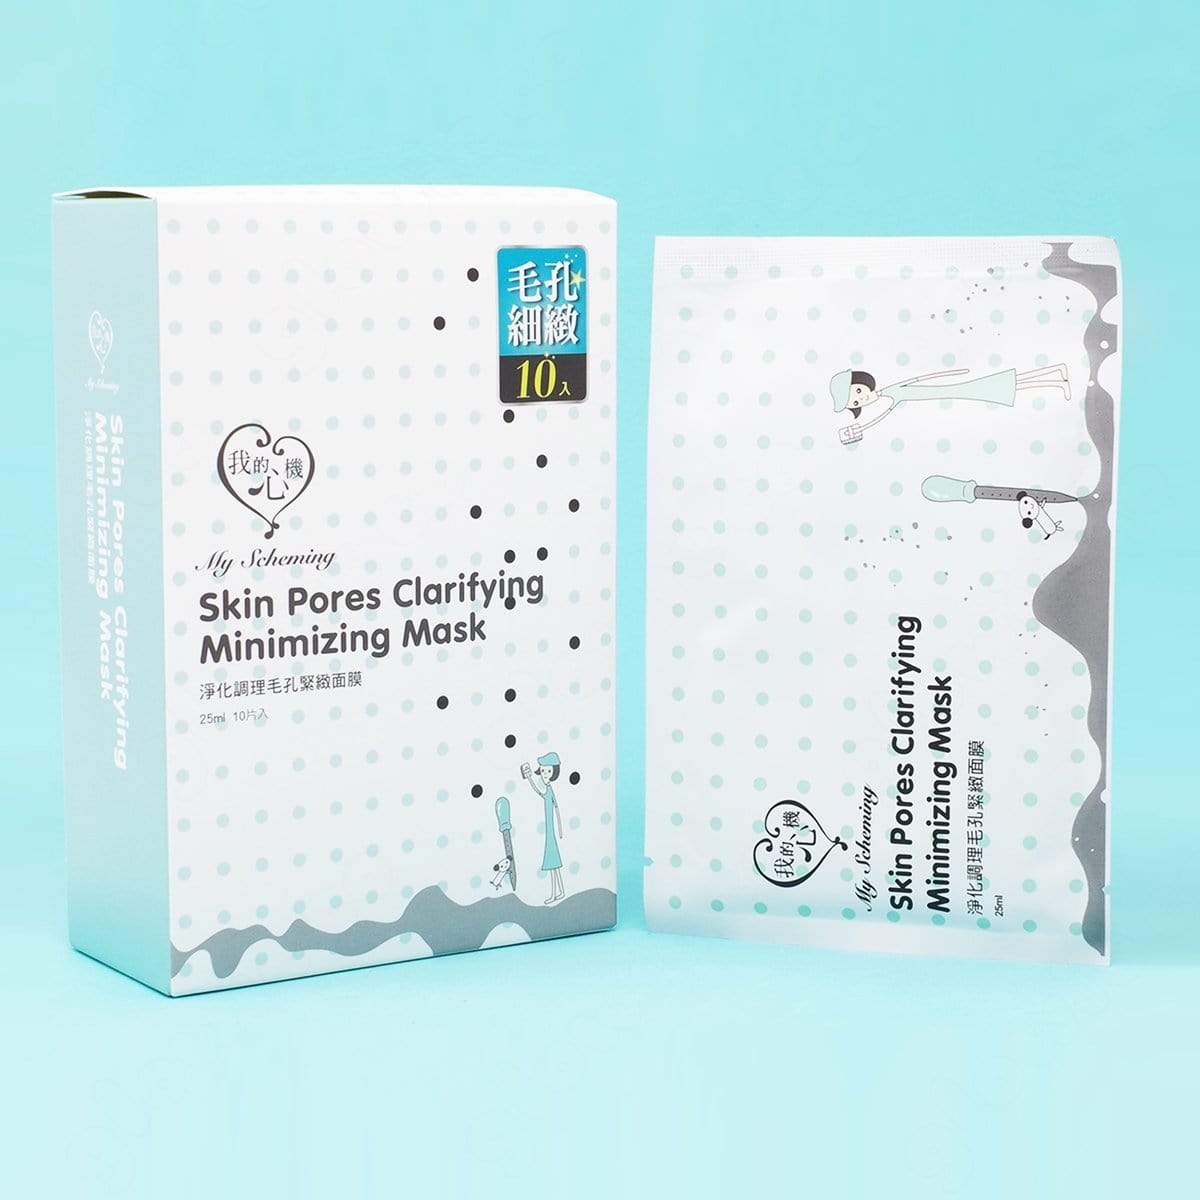 My Scheming Skin Pores Clarifying Minimizing Mask